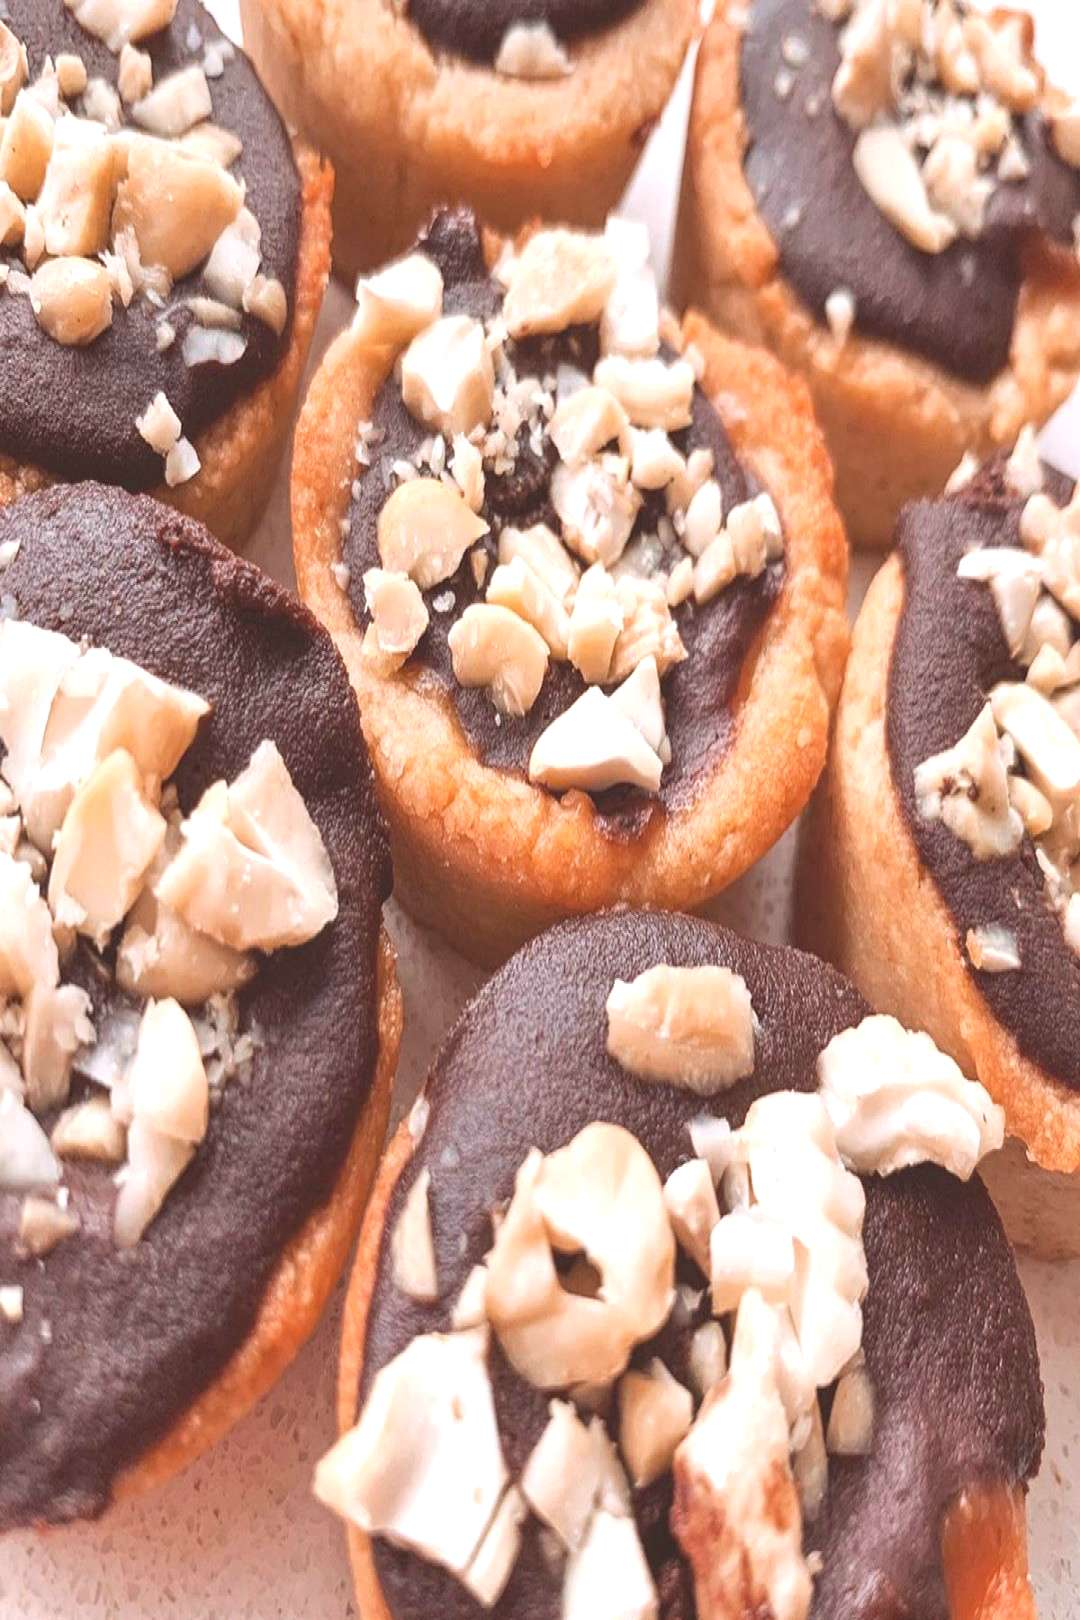 BAKED PEANUT BUTTER CUPS Happy National peanut butter lovers day!